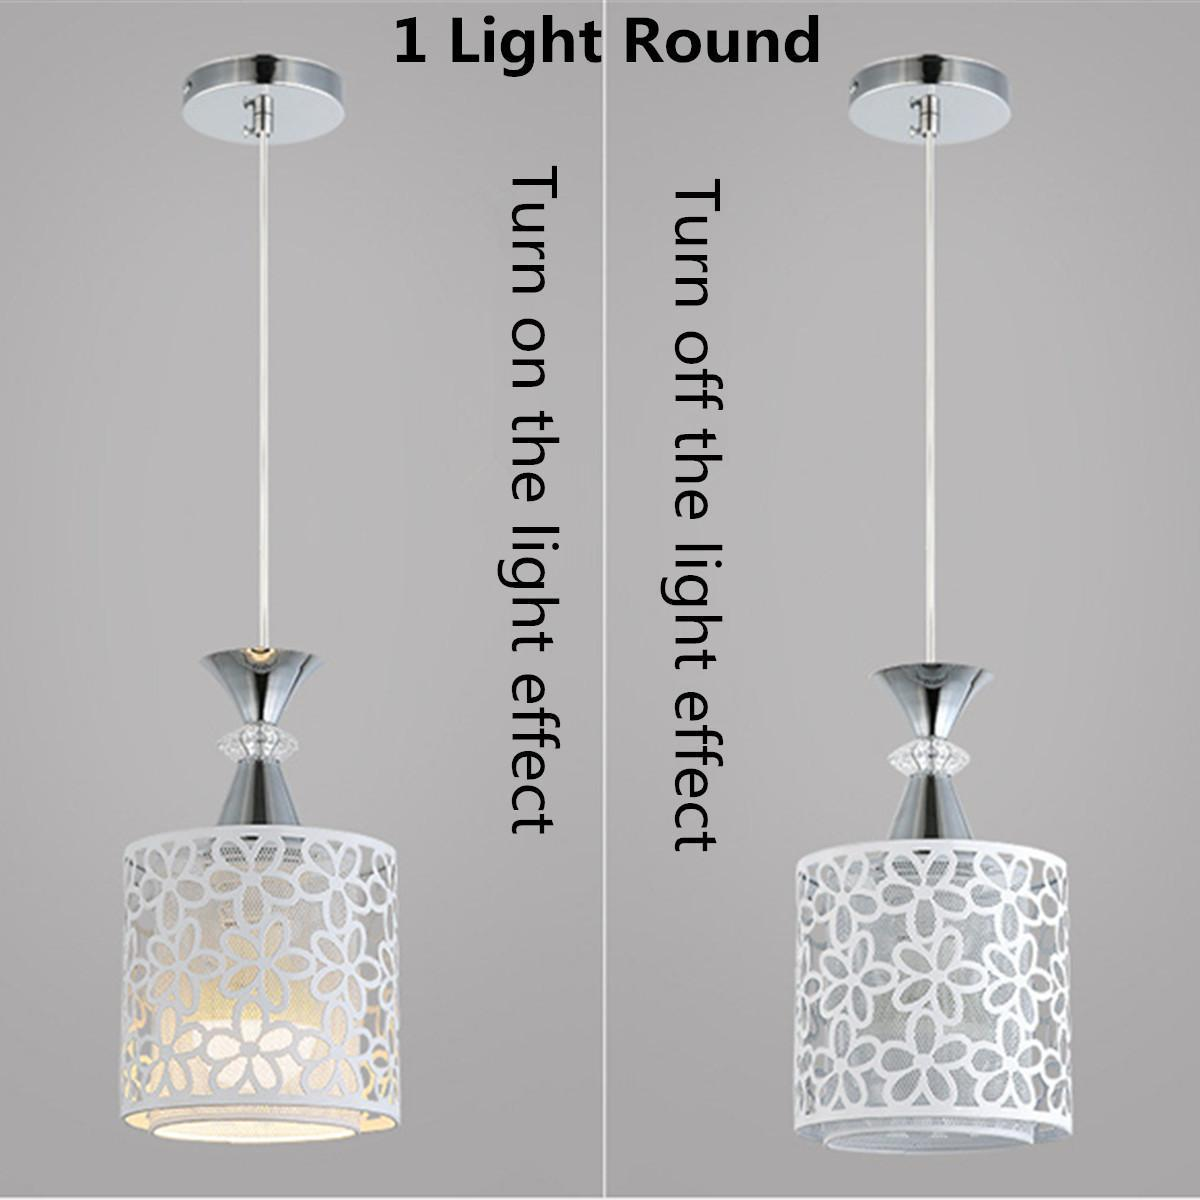 Modern Flower Petal Ceiling Light LED Pendant Lamp Dining Chandelier Room Decor #1 Light Round